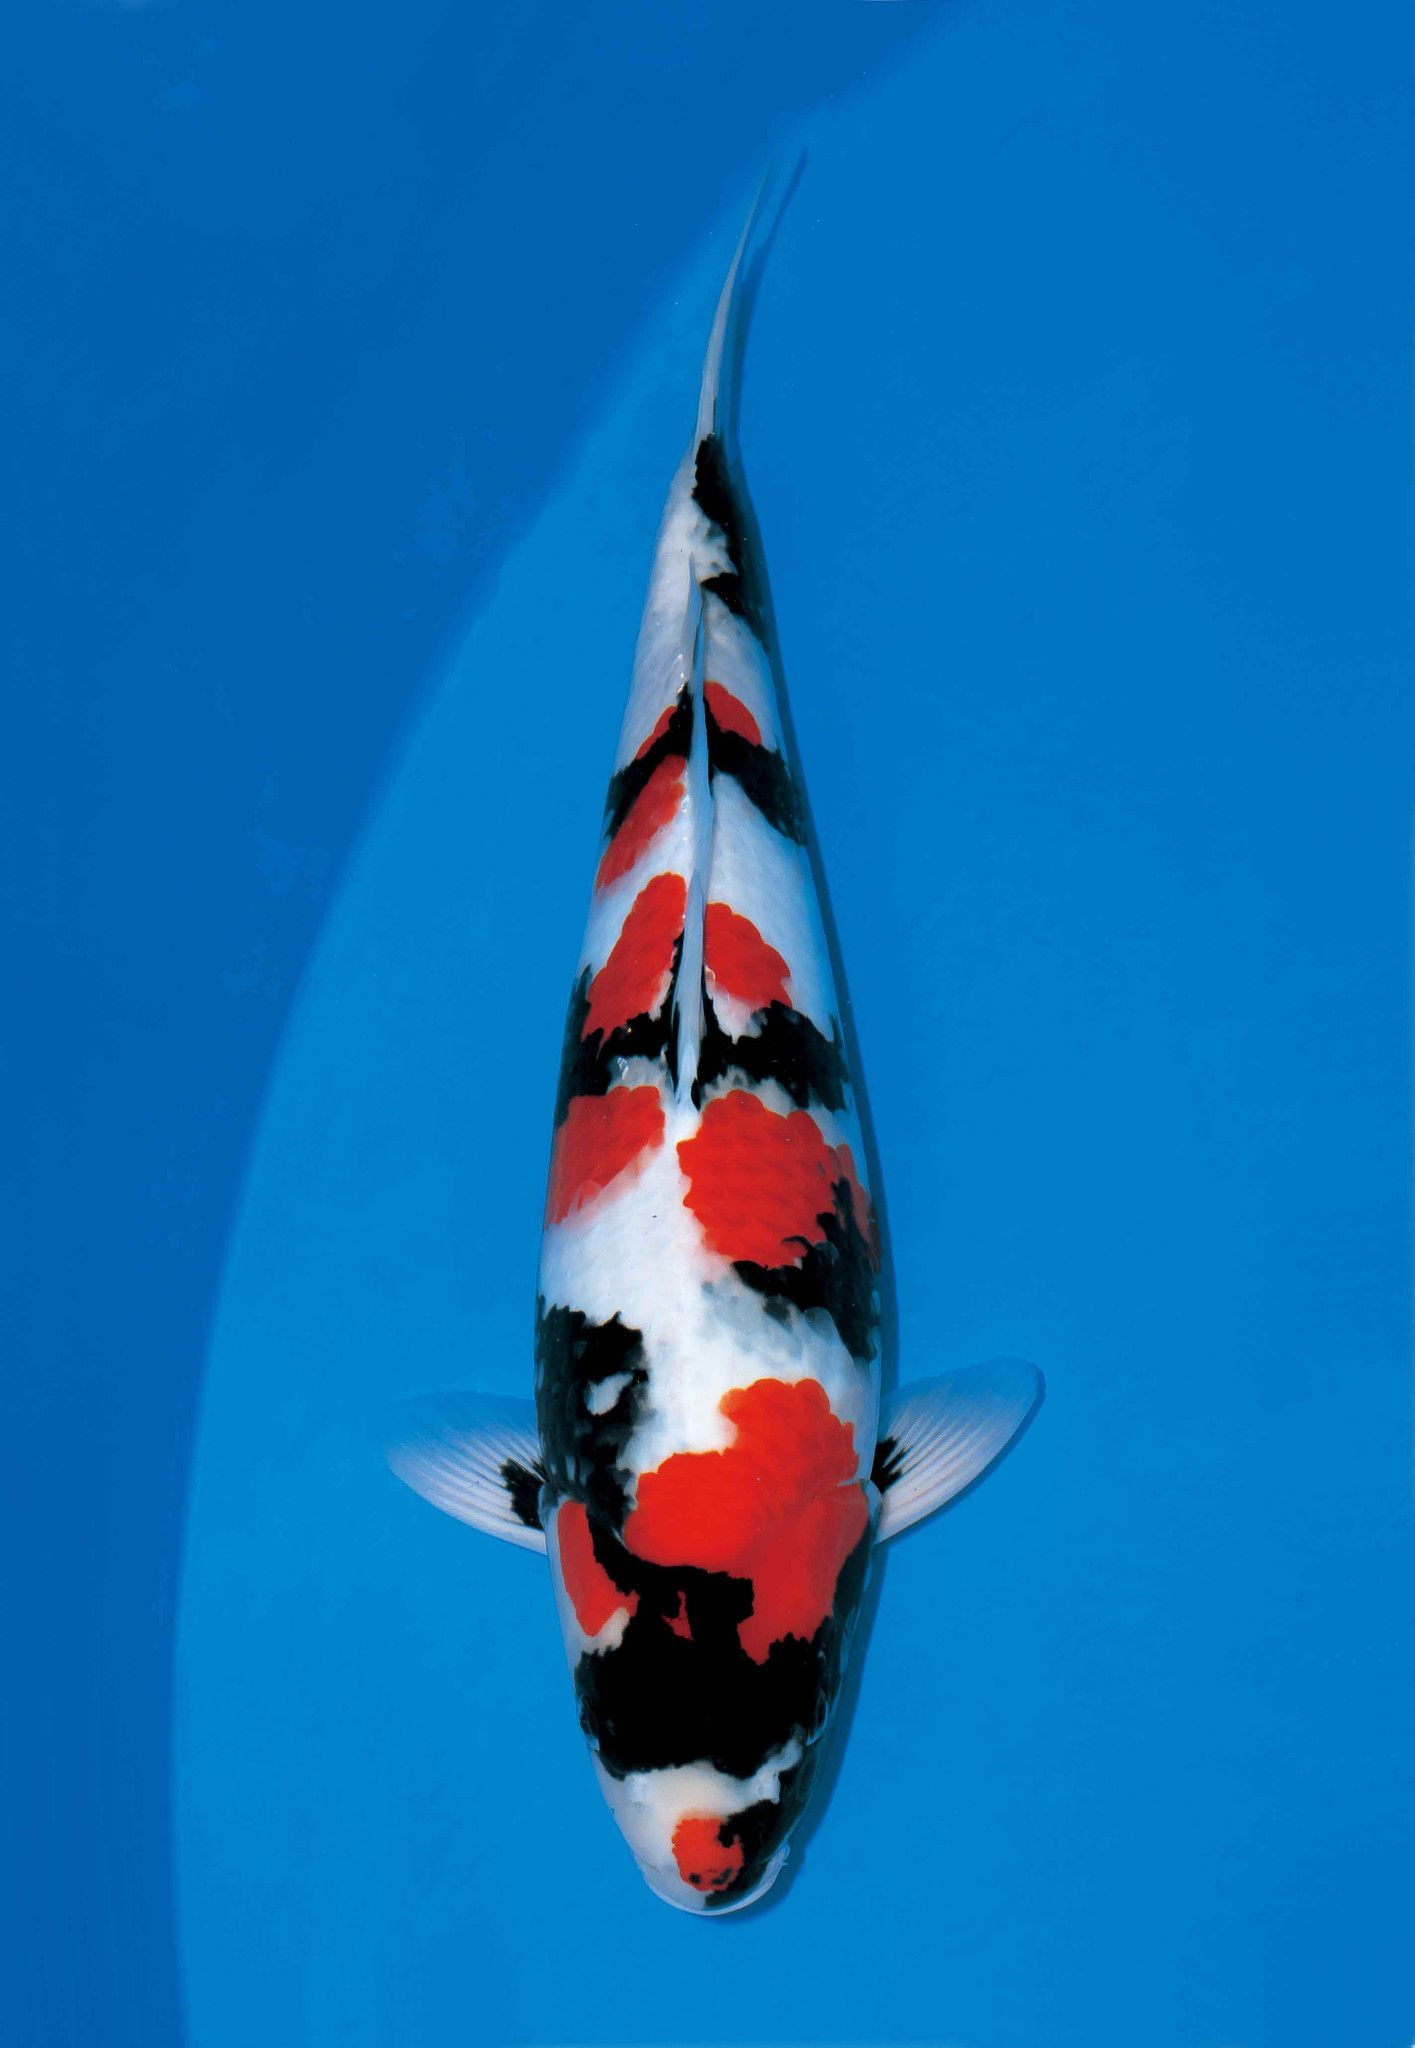 Just Listed Our New Showa Check It Out Http Playitkoi Com Products Showa Utm Campaign Social Autopilot Utm Source Pin Utm Mediu Japanese Koi Koi Koi Fish